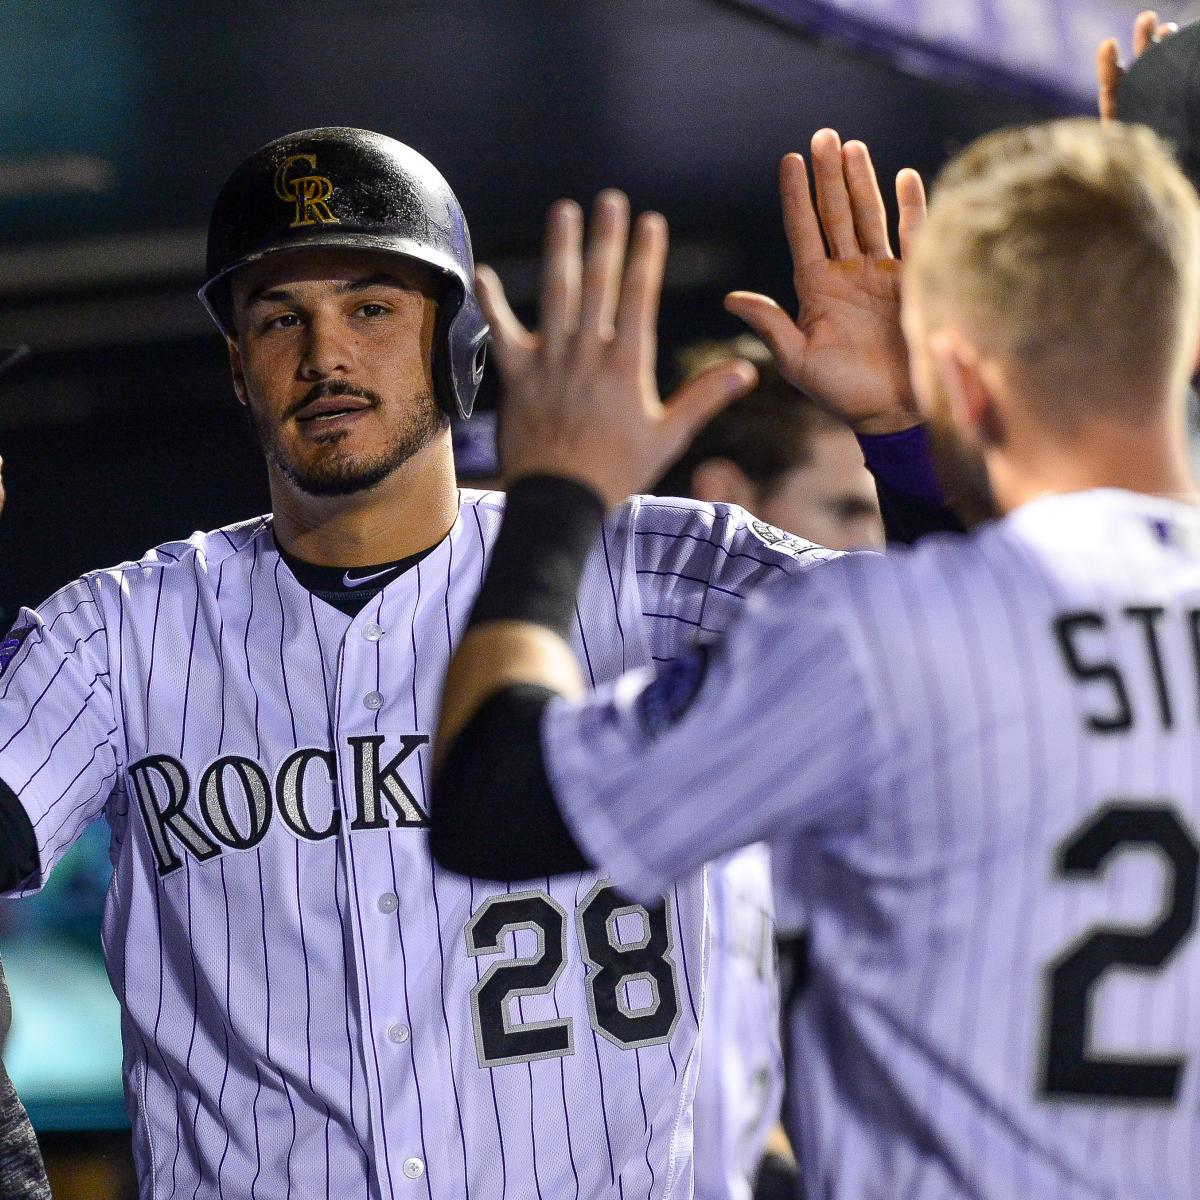 Rockies Clinch Berth In 2018 MLB Playoffs With Win Over